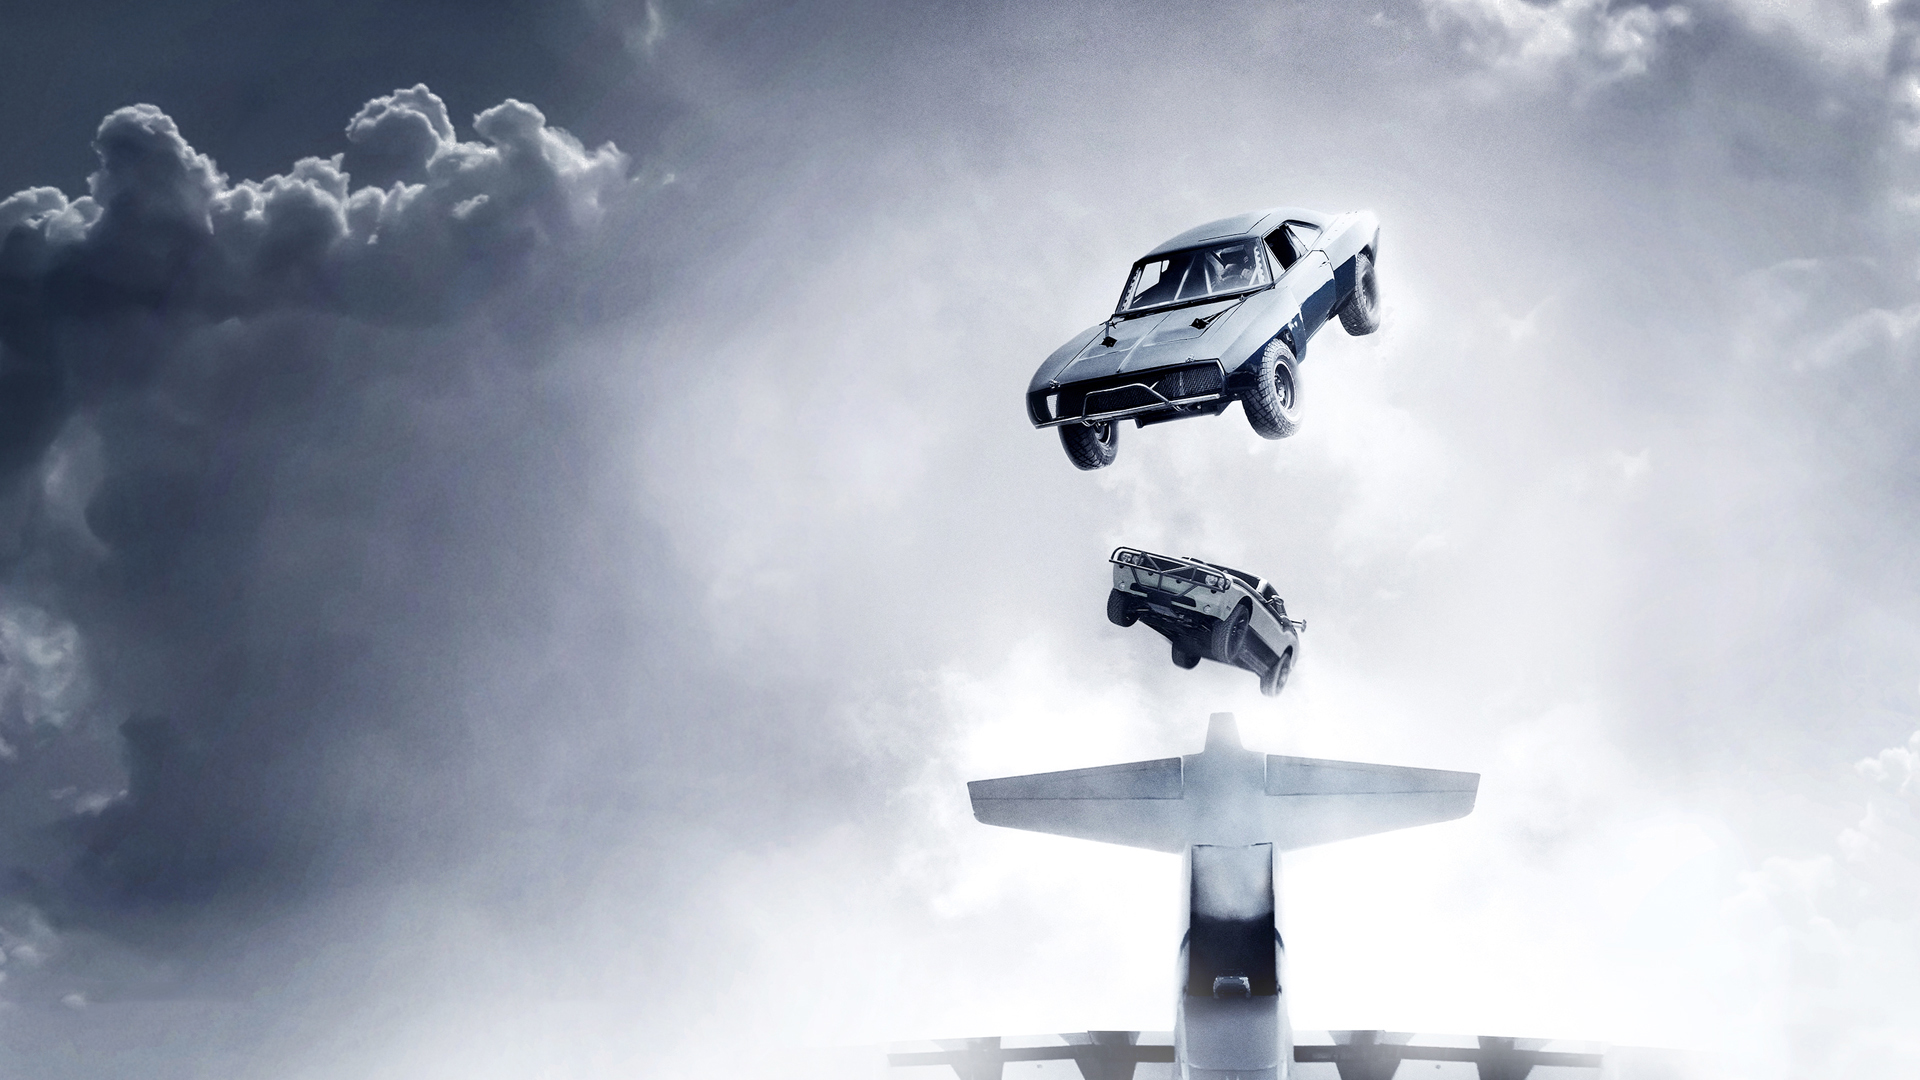 Fast And The Furious 7 Wallpaper: Furious 7 HD Wallpaper